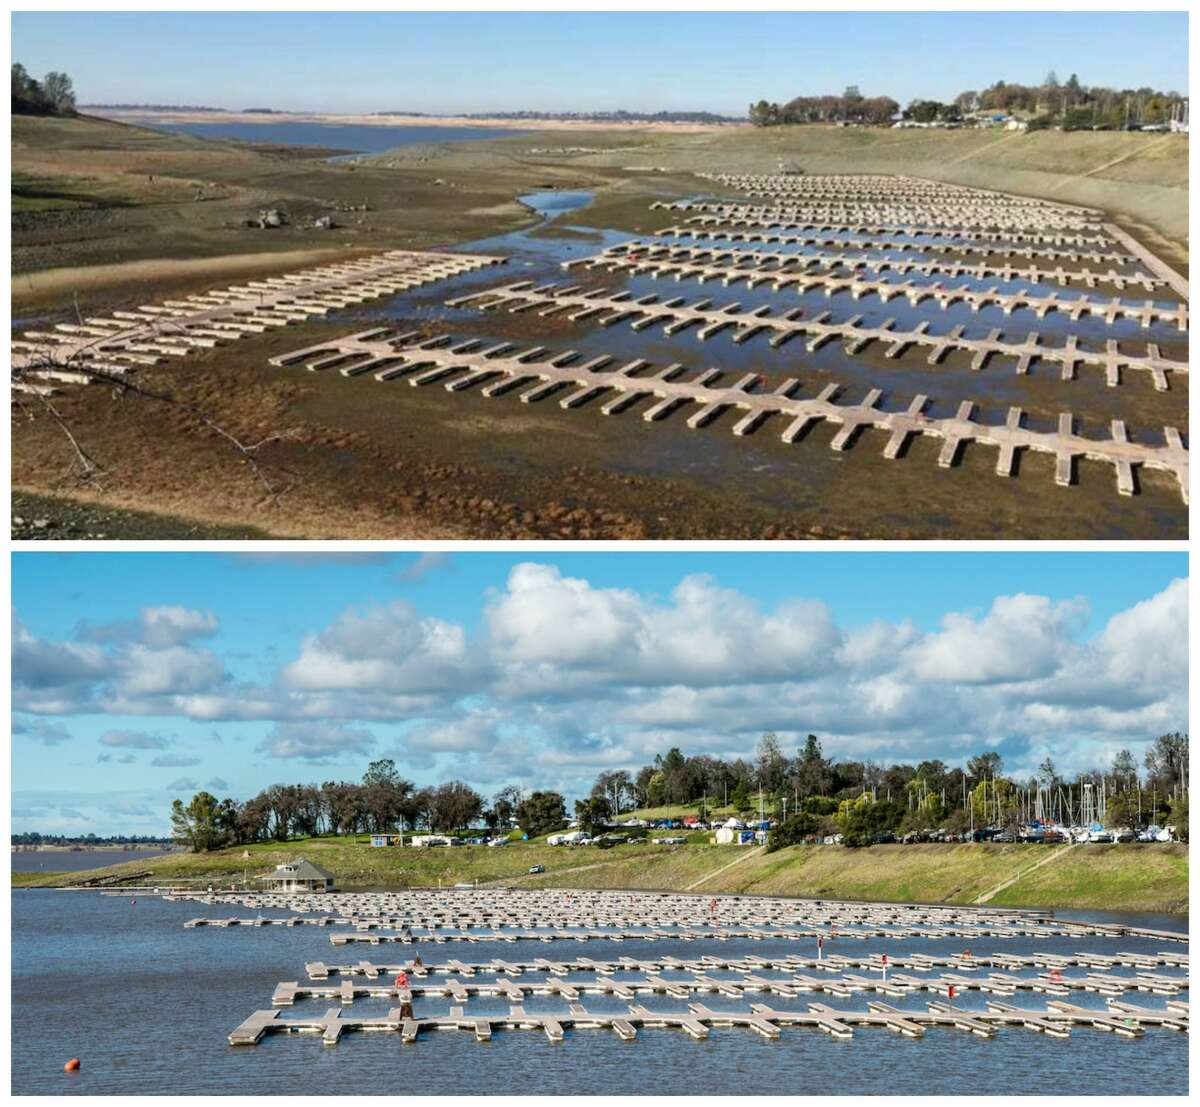 Folsom Lake: Before and after the Jan. 10, 2017 storm Top: A view of Folsom Lake on Dec. 31, 2015. California's ninth-largest reservoir outside Sacramento reached its lowest levels in Nov. 2015. Bottom: Due to the recent rain, water levels have increased at Folsom Lake Marina, one of the largest inland marinas in California, located at Browns Ravine Cove on the south shore of Folsom Lake, January 11, 2017.